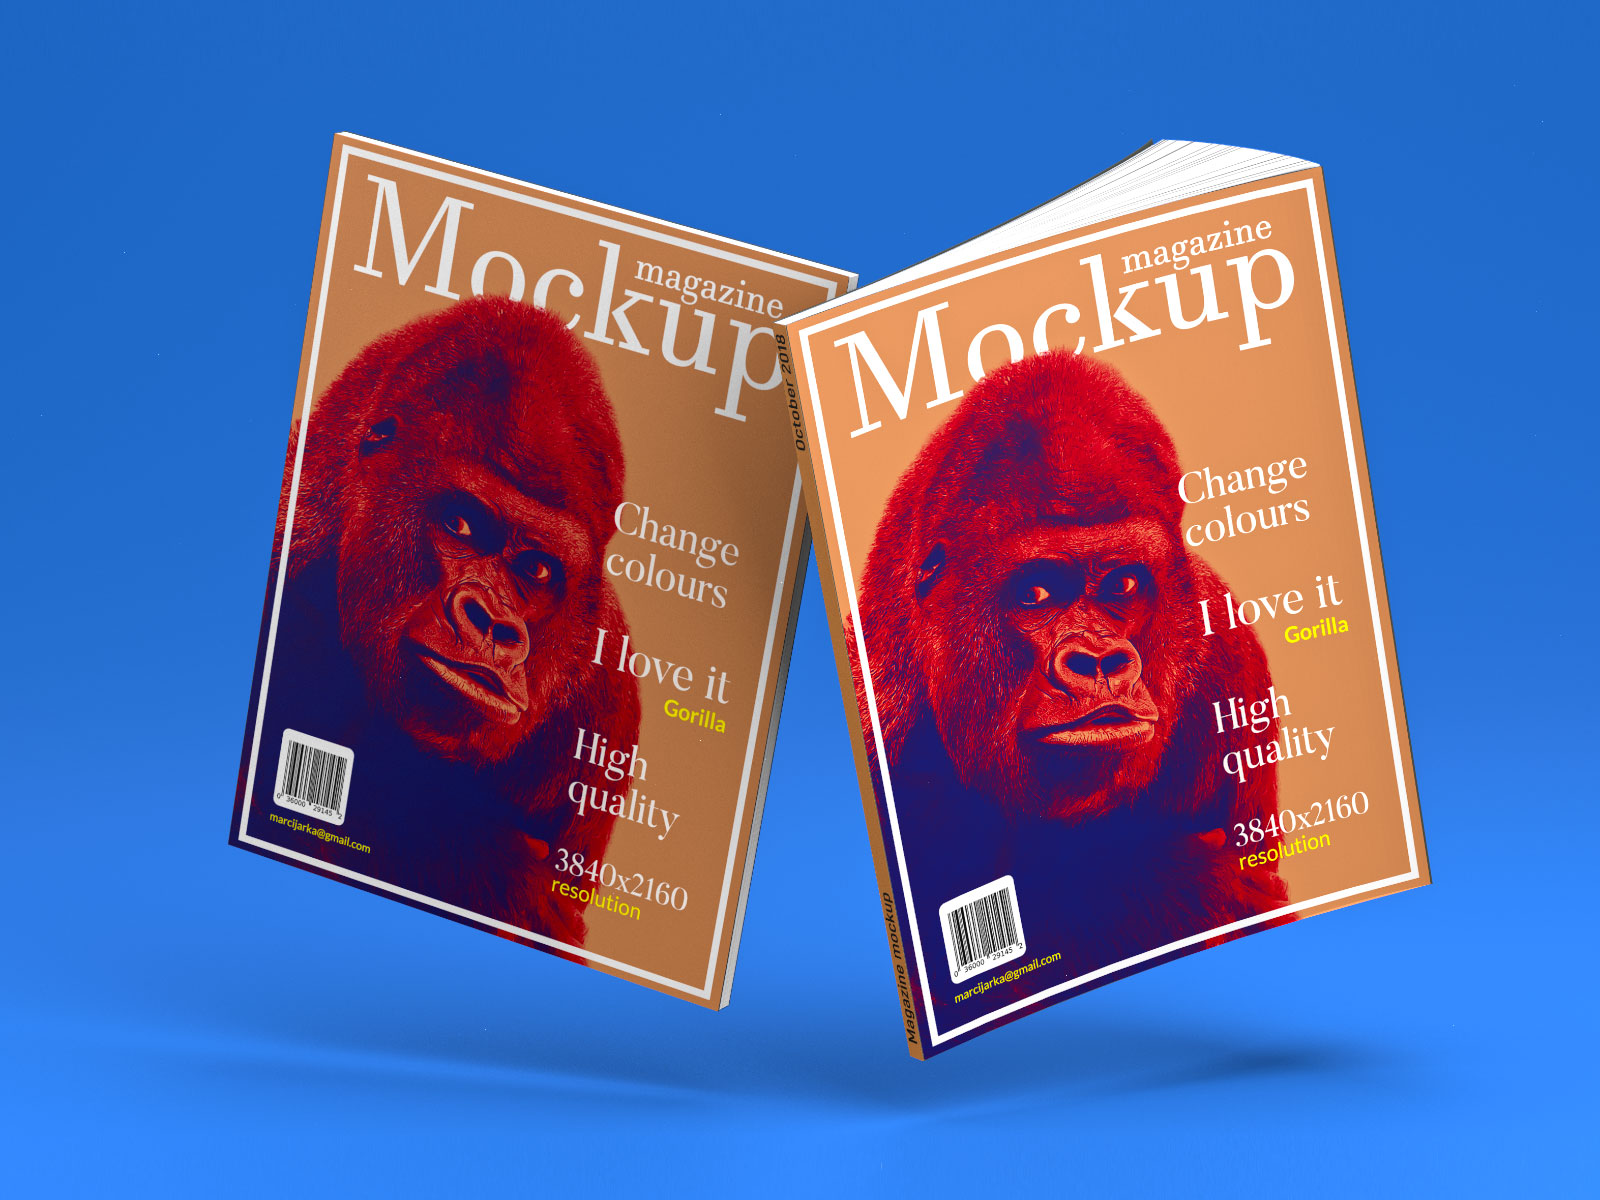 Free-High-Quality-Magazine-Mockup-PSD-Set